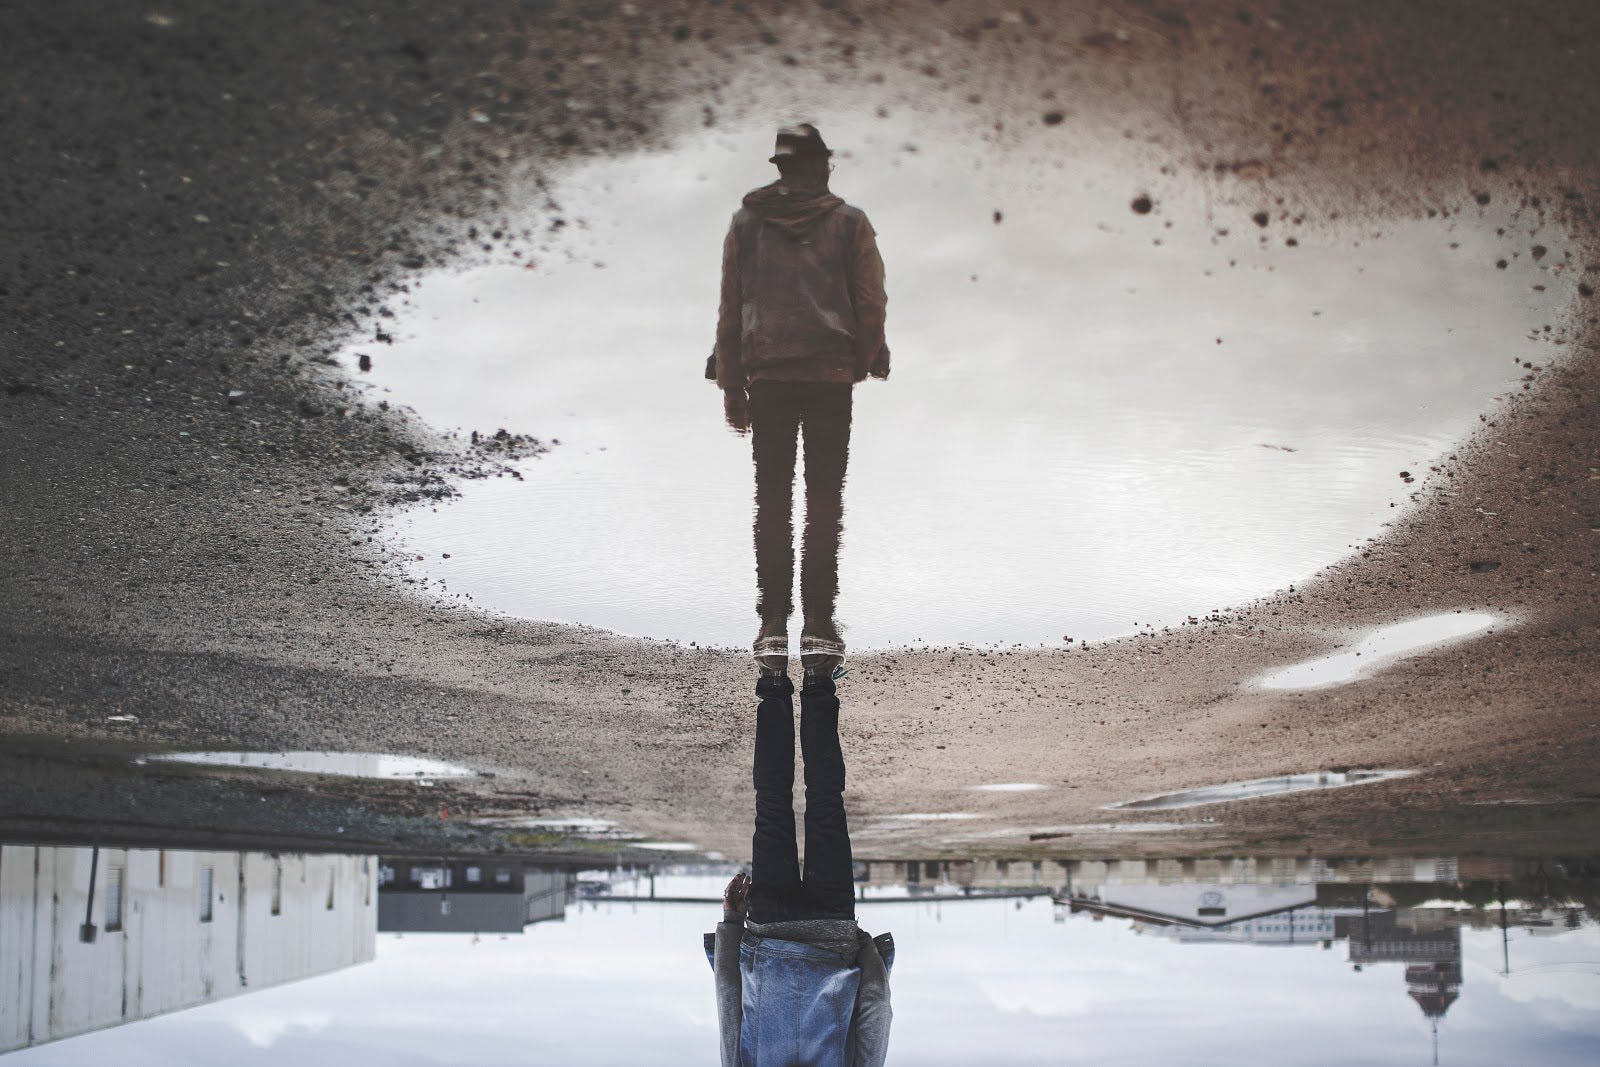 Reflection of a man standing in front of a puddle by Randy Jacob